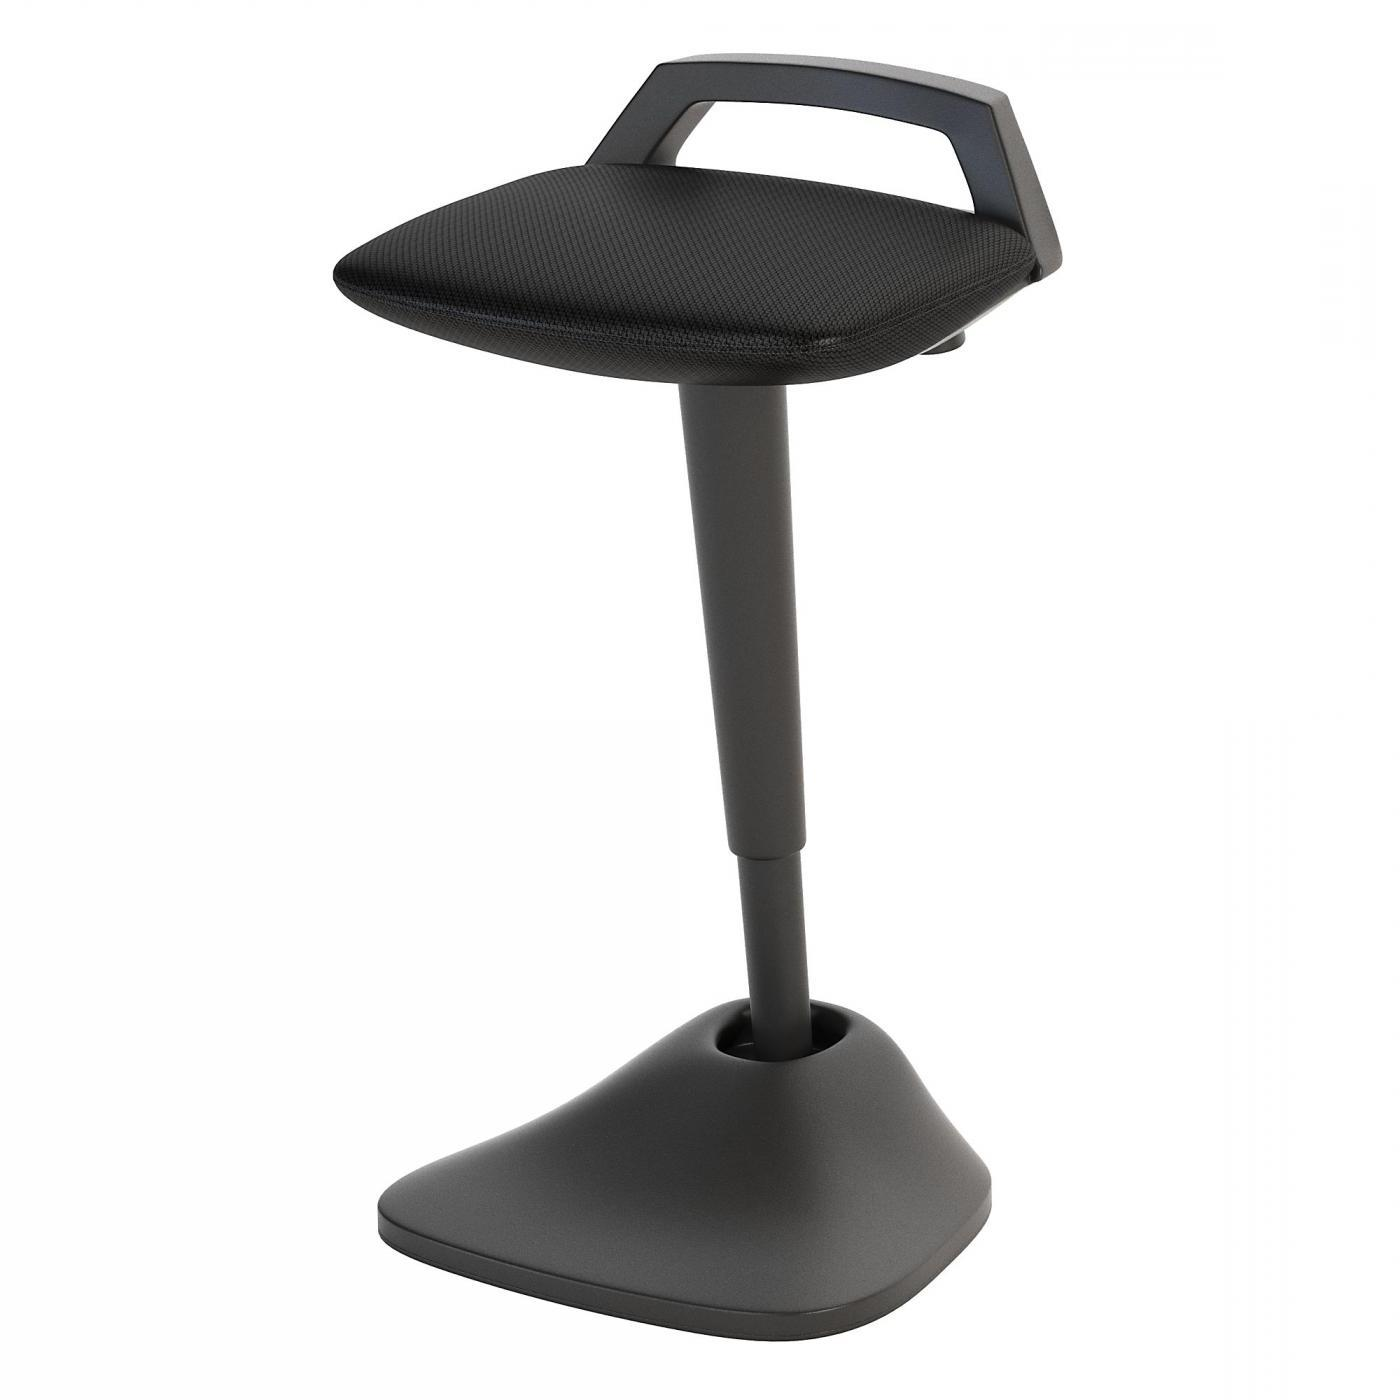 <font color=#c60><b>BUSH BUSINESS FURNITURE THRIVE ADJUSTABLE STANDING DESK STOOL. FREE SHIPPING</font></b> </font></b></font></b>